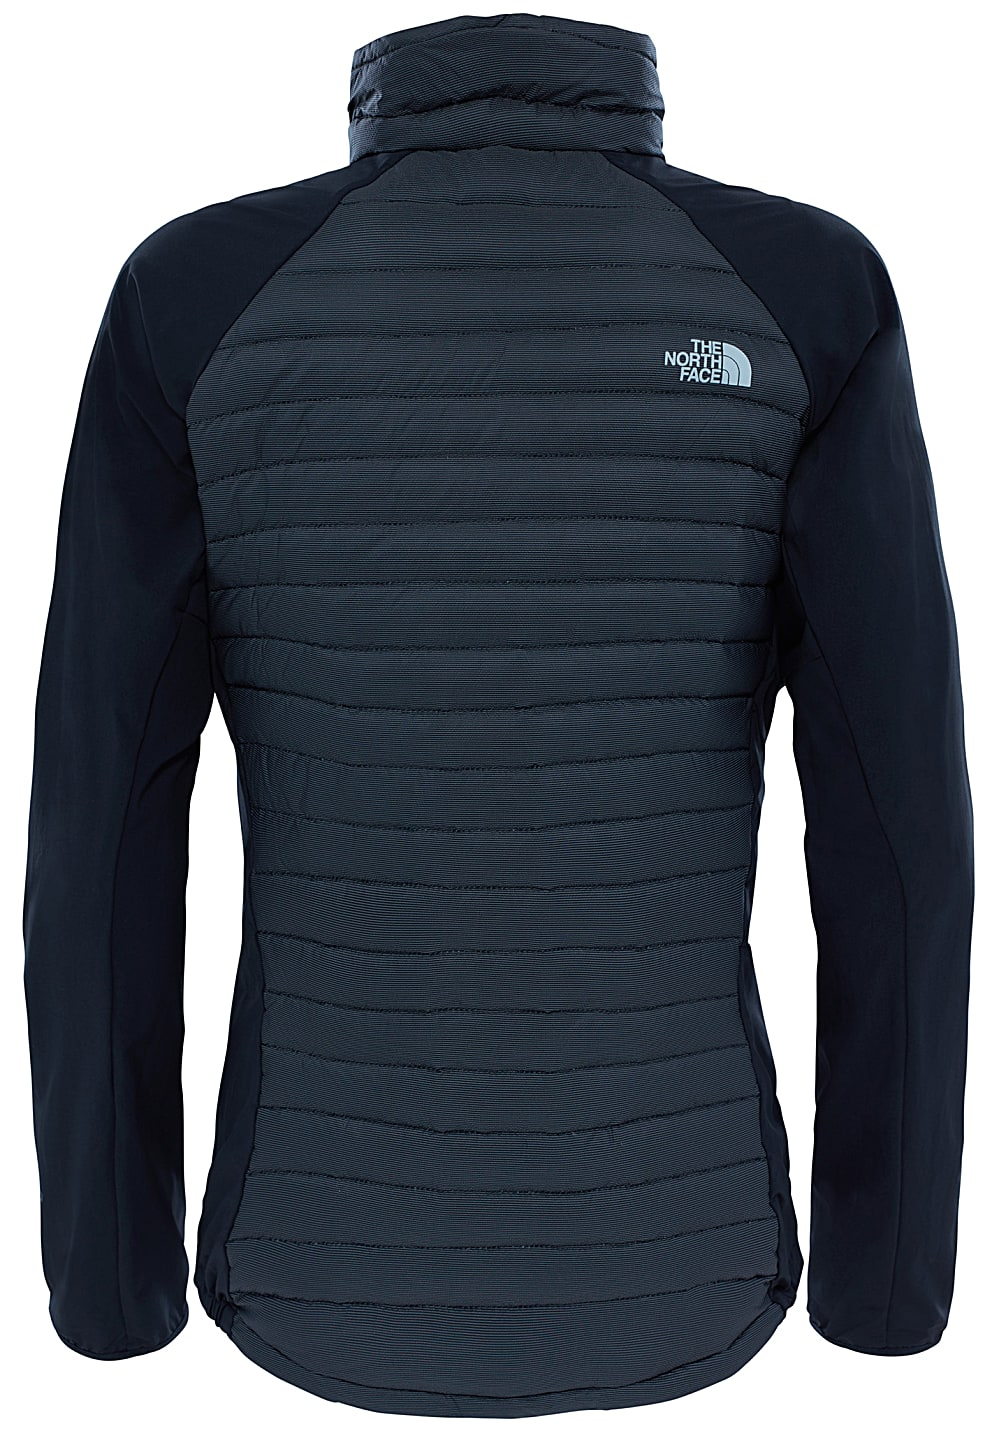 THE NORTH FACE Verto Micro - Funktionsjacke für Damen Schwarz